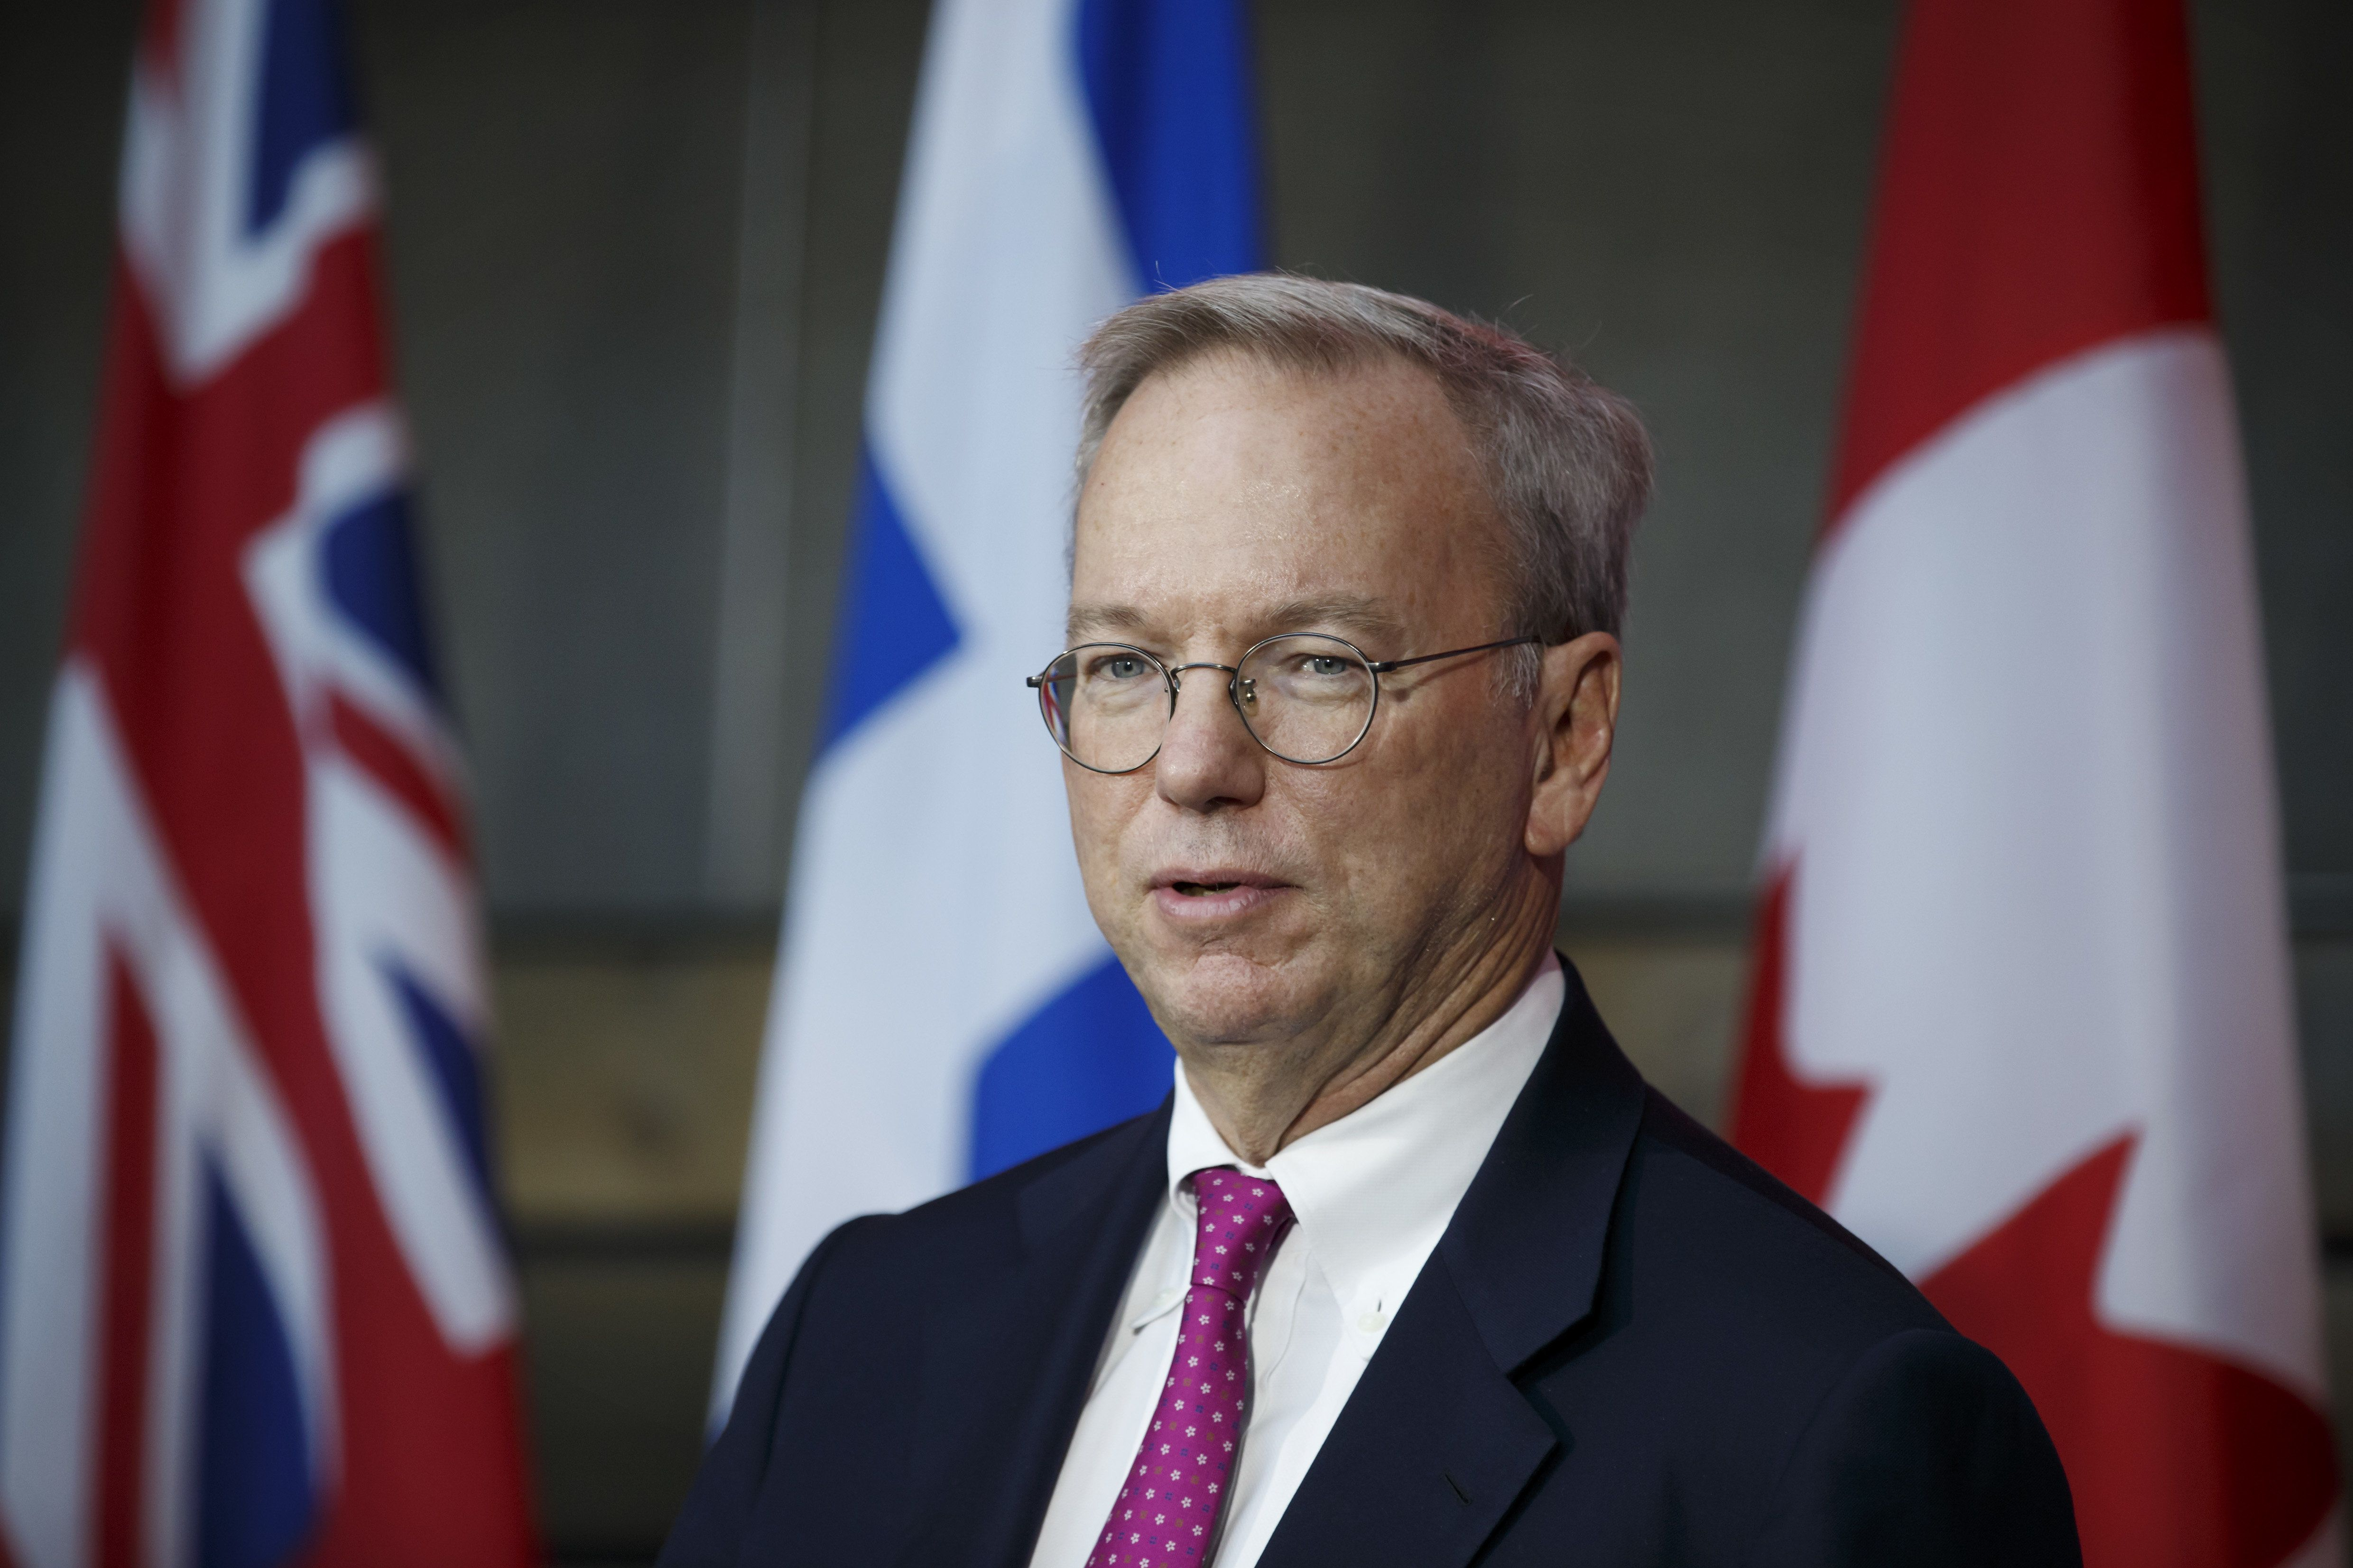 Eric Schmidt, chief executive officer of Alphabet Inc., speaks during an event in Toronto, Ontario, Canada, on Tuesday, Oct. 17, 2017. Sidewalk Labs LLC, the urban innovation unit ofAlphabet Inc., and Waterfront Toronto plan to foster the development of a high-tech community from scratch along Lake Ontario in Canada's biggest city. The area aims to become an innovation hub for technologies that improve city life, from green energy systems, to self-driving transit and new construction techniques that can lower housing costs, the companies said in a astatement. Photographer: Cole Burston/Bloomberg via Getty Images